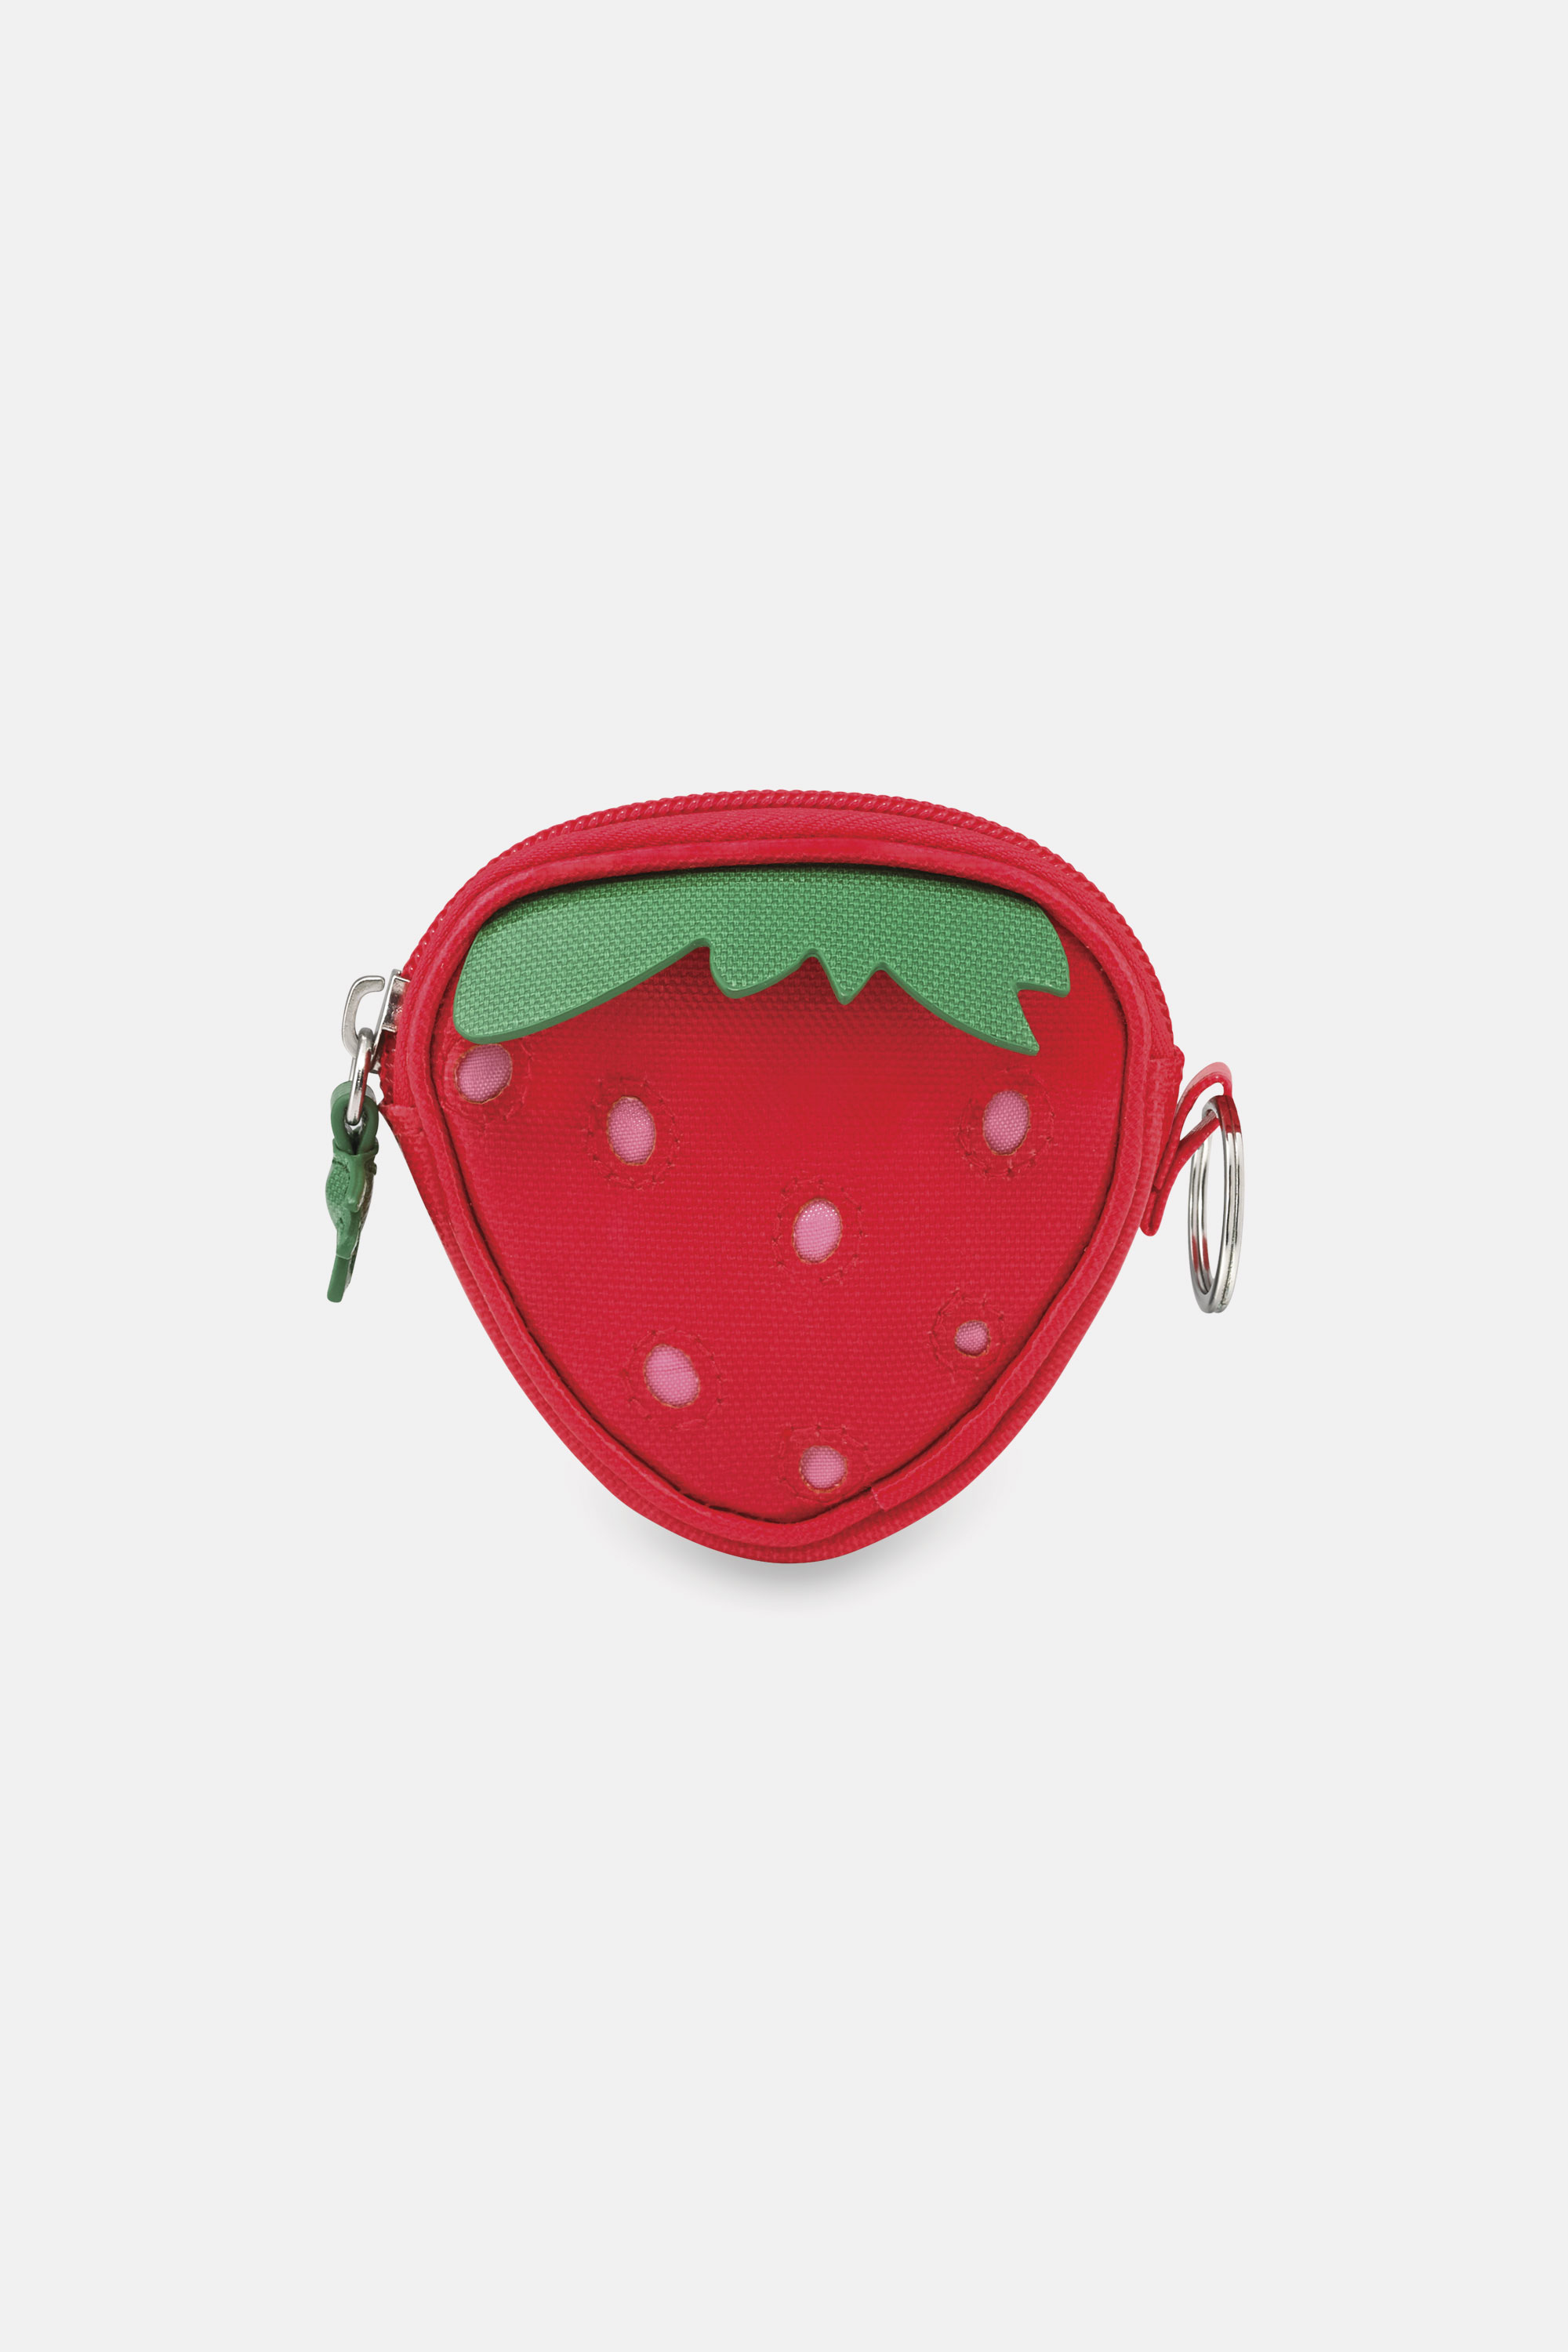 Cath Kidston Kids Purse in Rose Red, Solid, 100% Shiny Coated Cotton Canvas